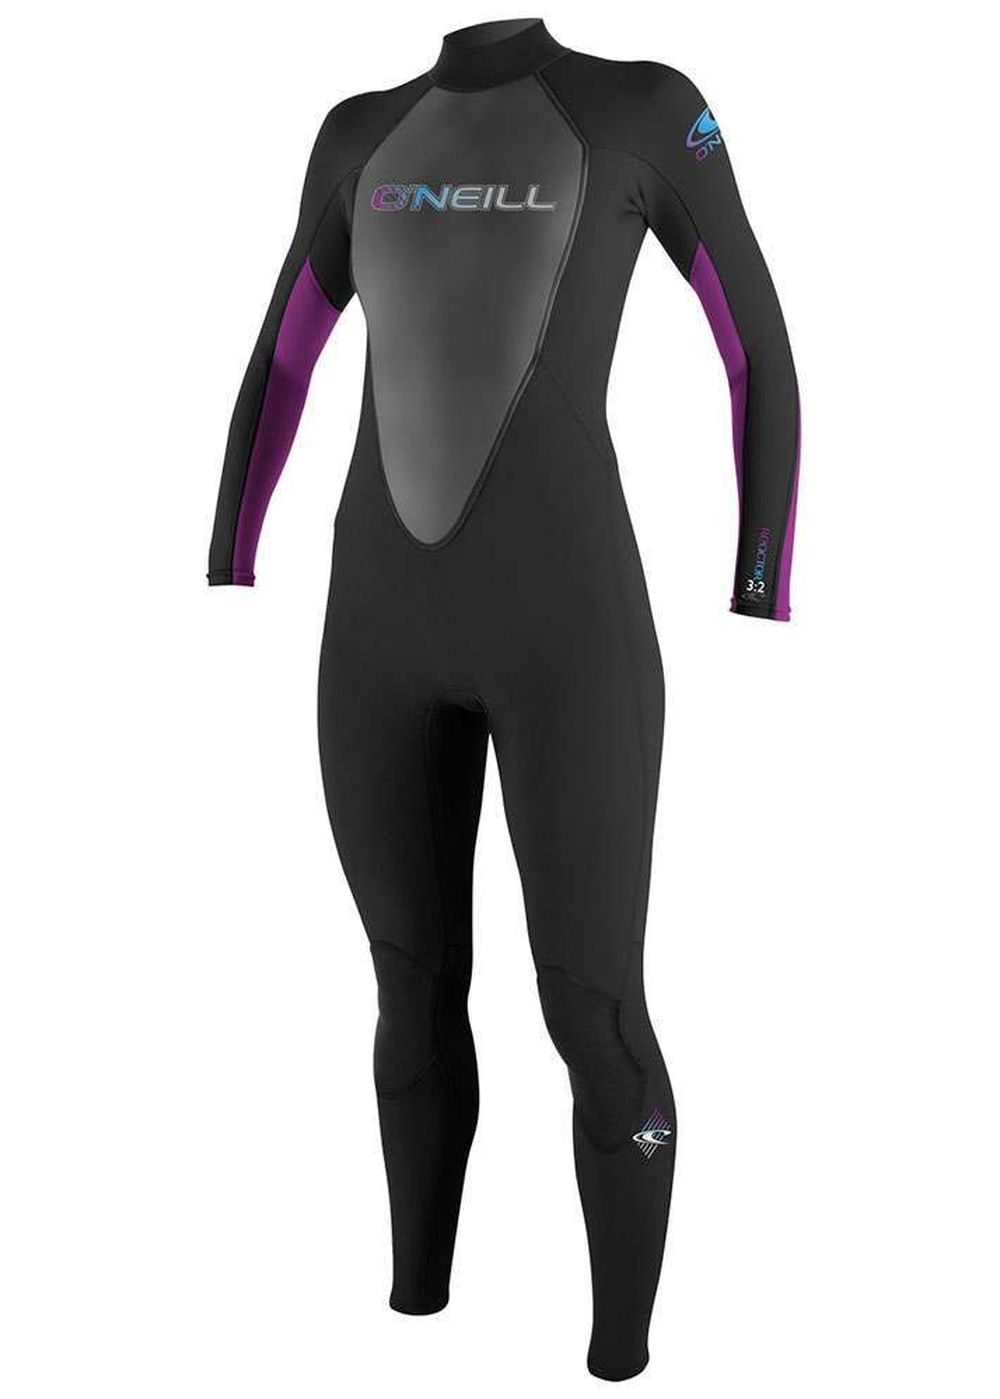 Oneill Womens Reactor 3/2 Wetsuit Black/uv Picture